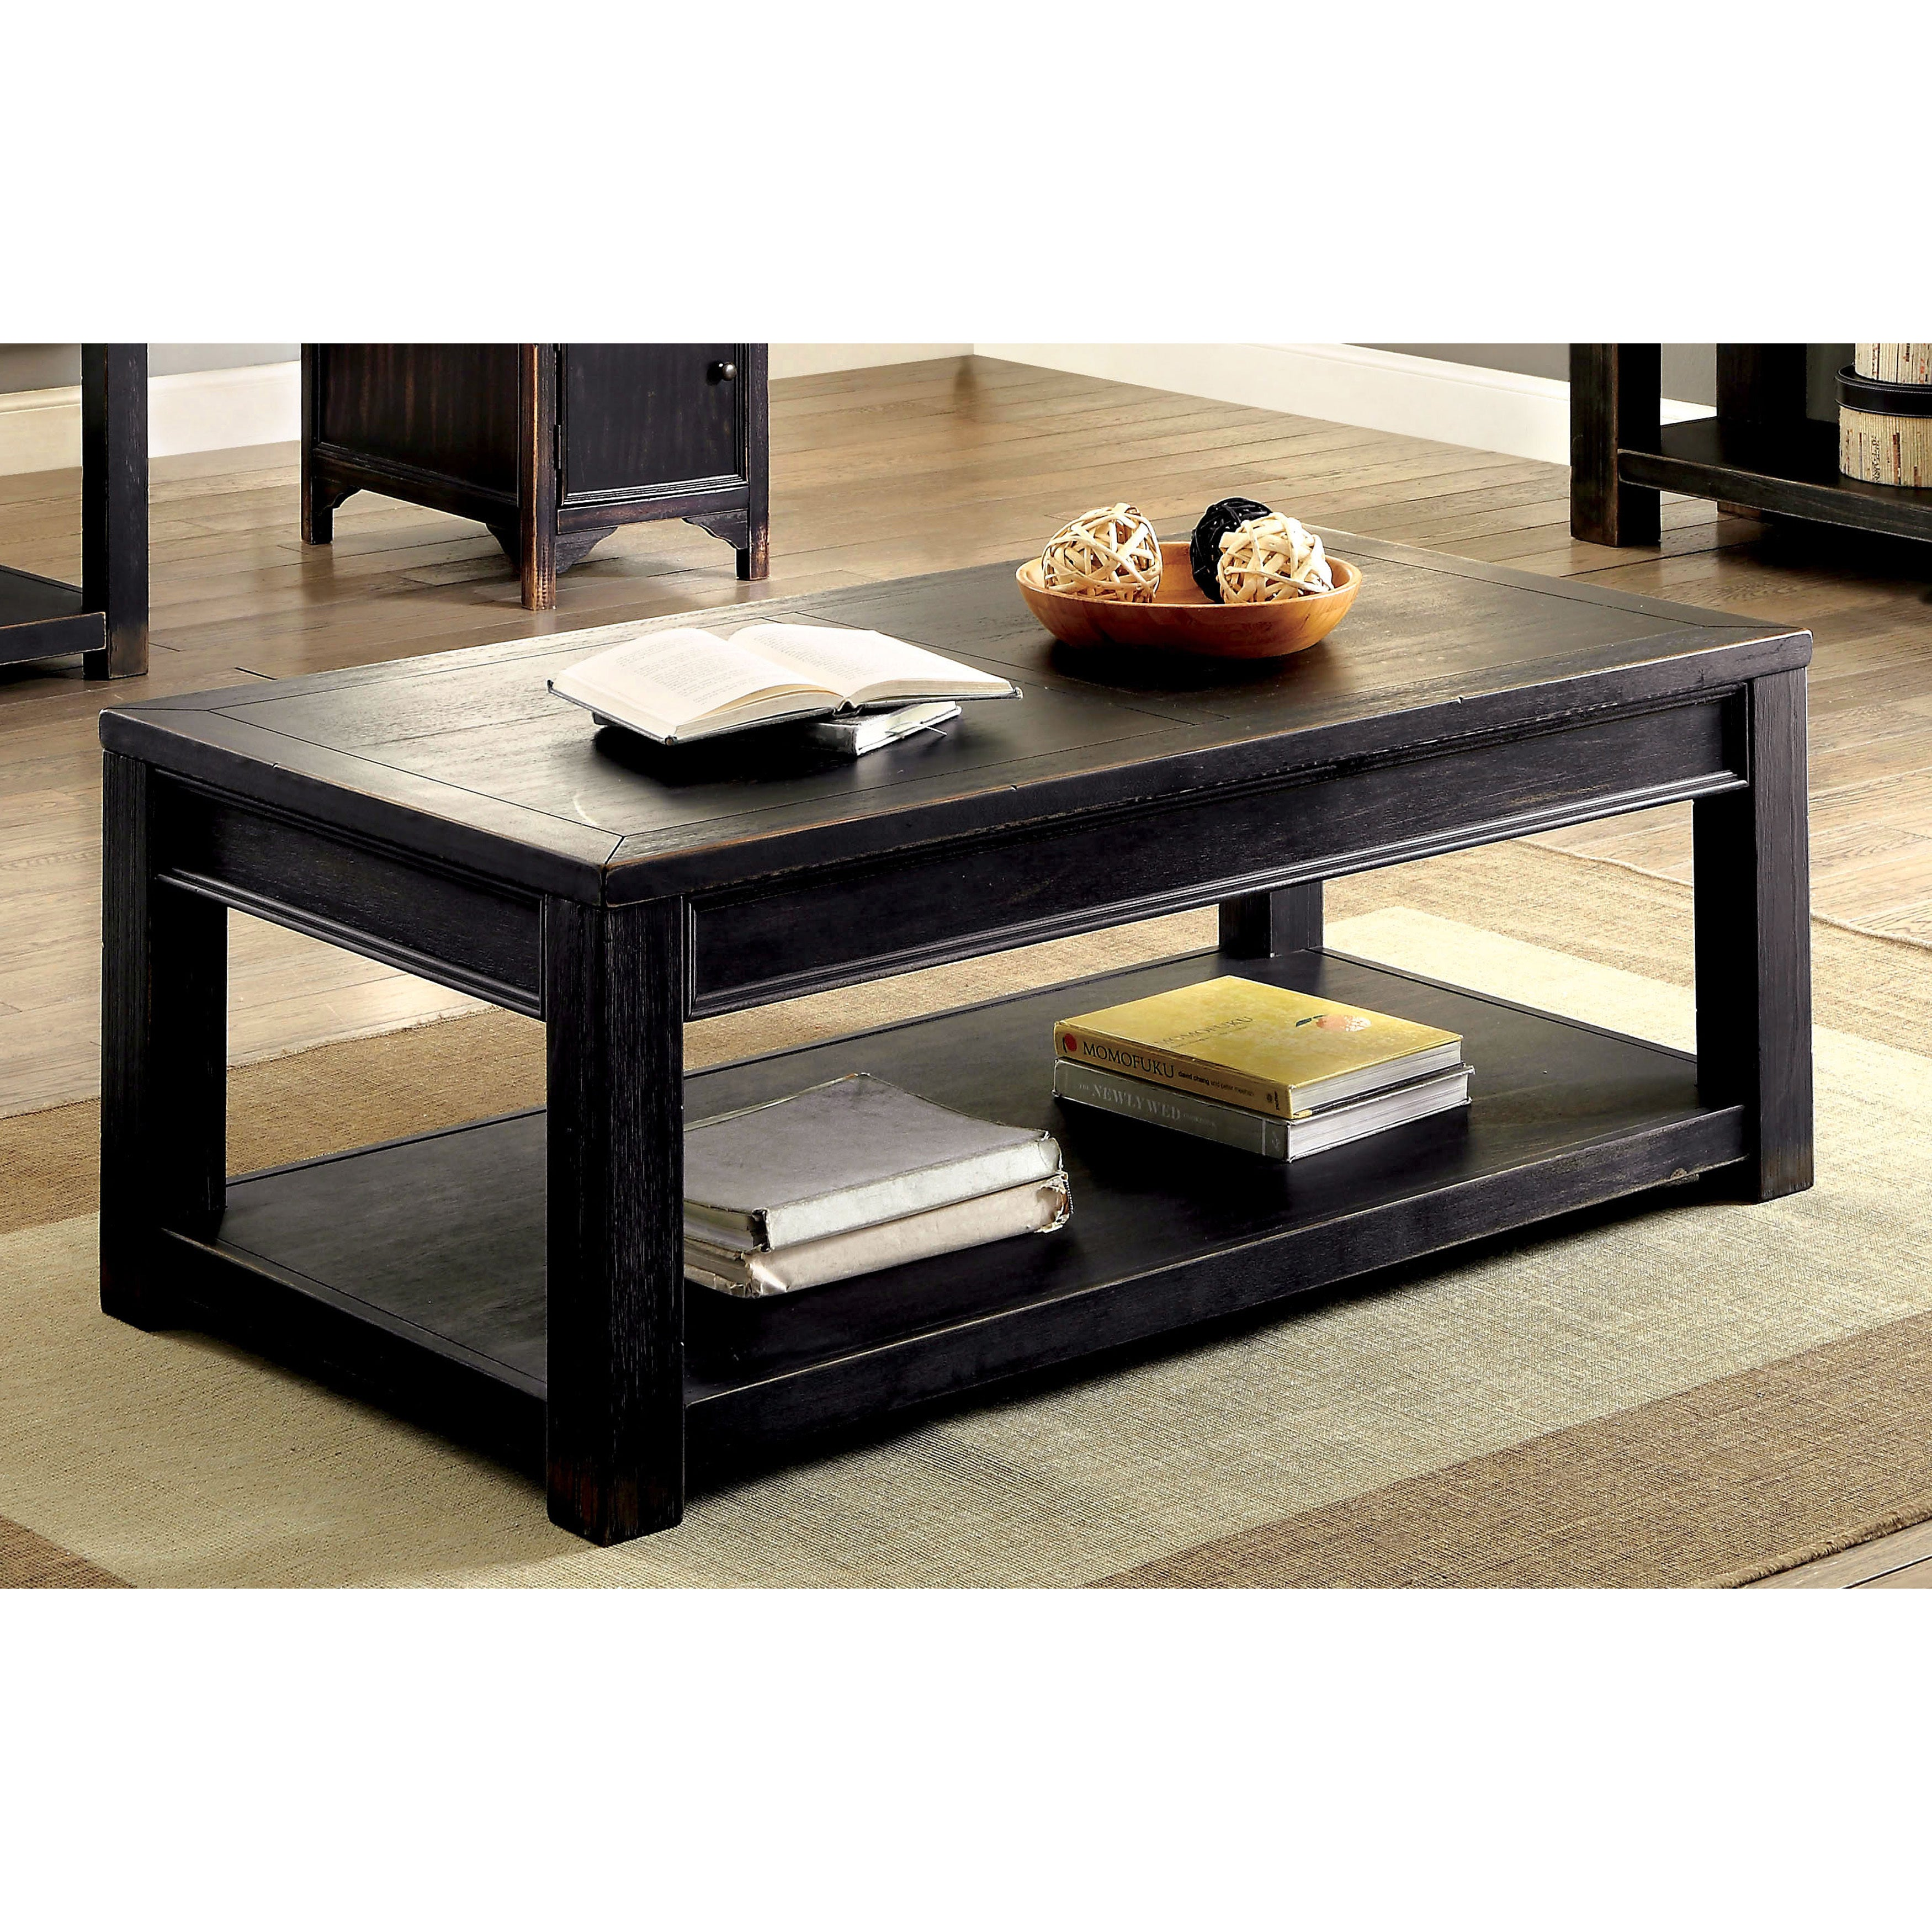 Furniture Of America Dill Rustic Black Solid Wood Shelf Coffee Table